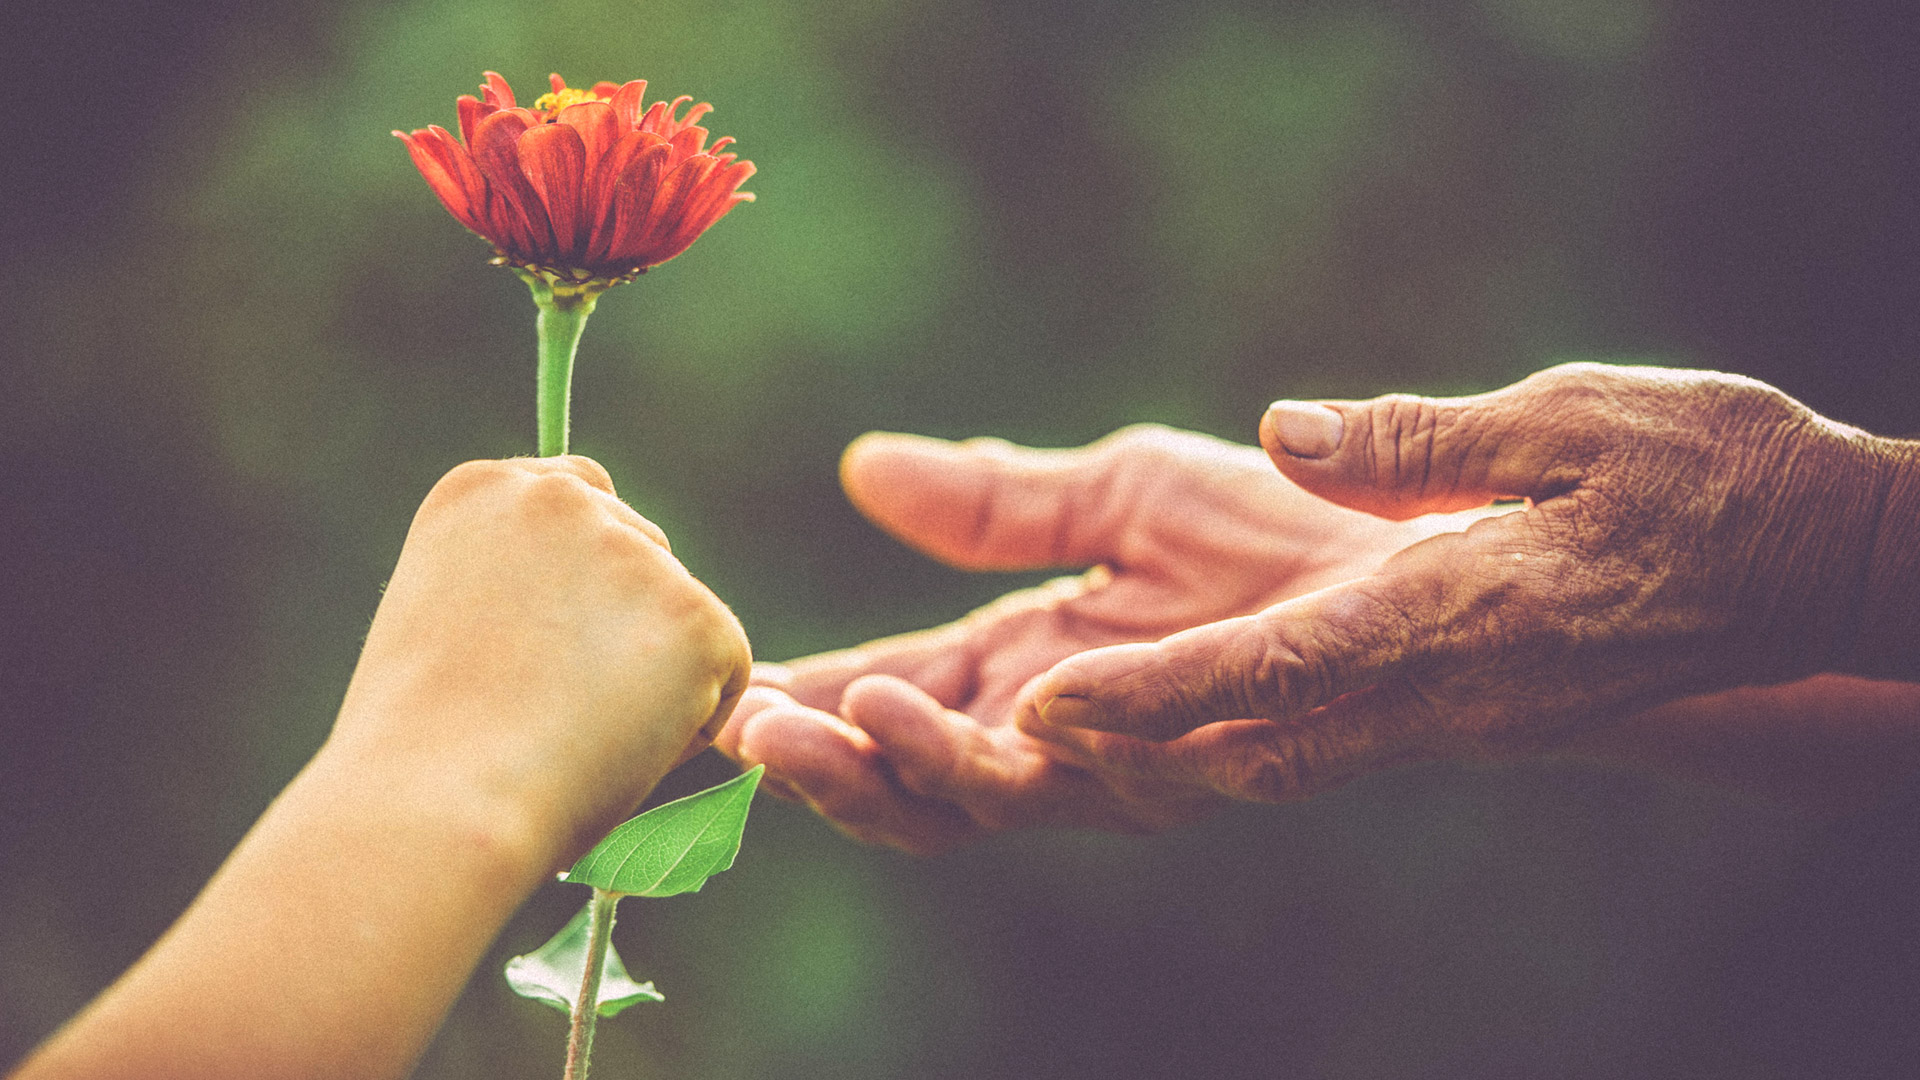 handing elderly person a flower